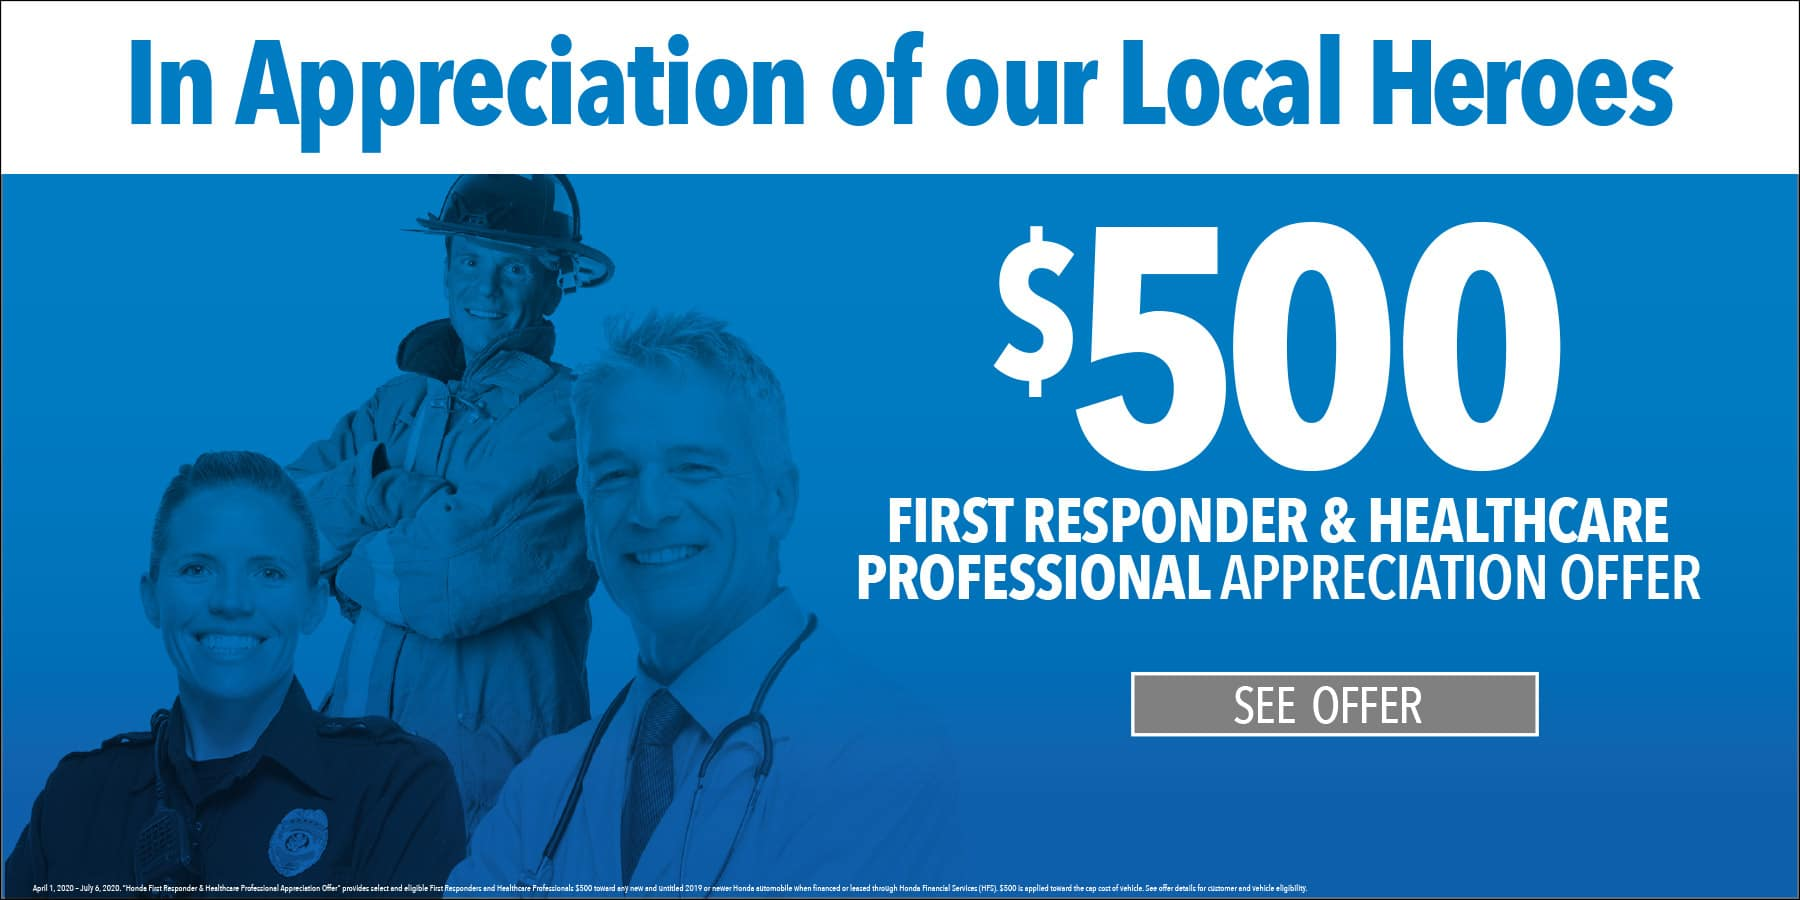 $500 offer for first responders and healthcare professionals